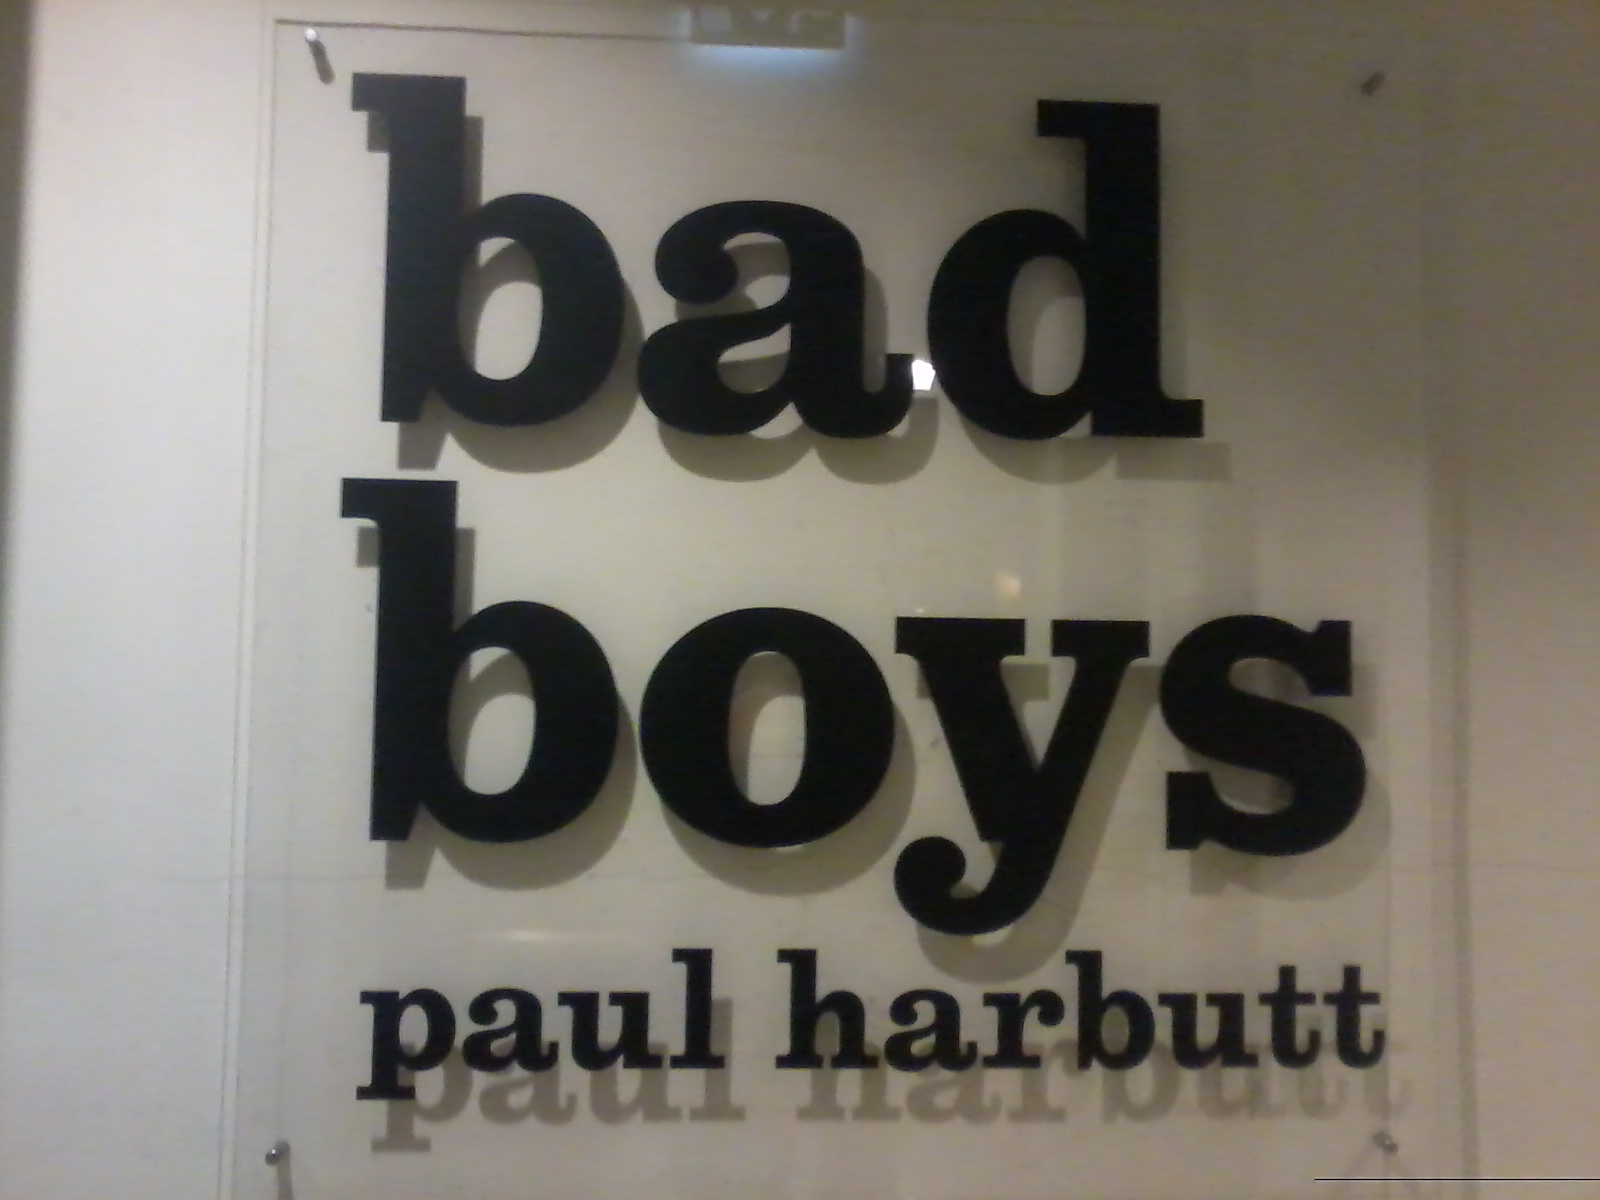 Paul Harbutt - Bad Boys